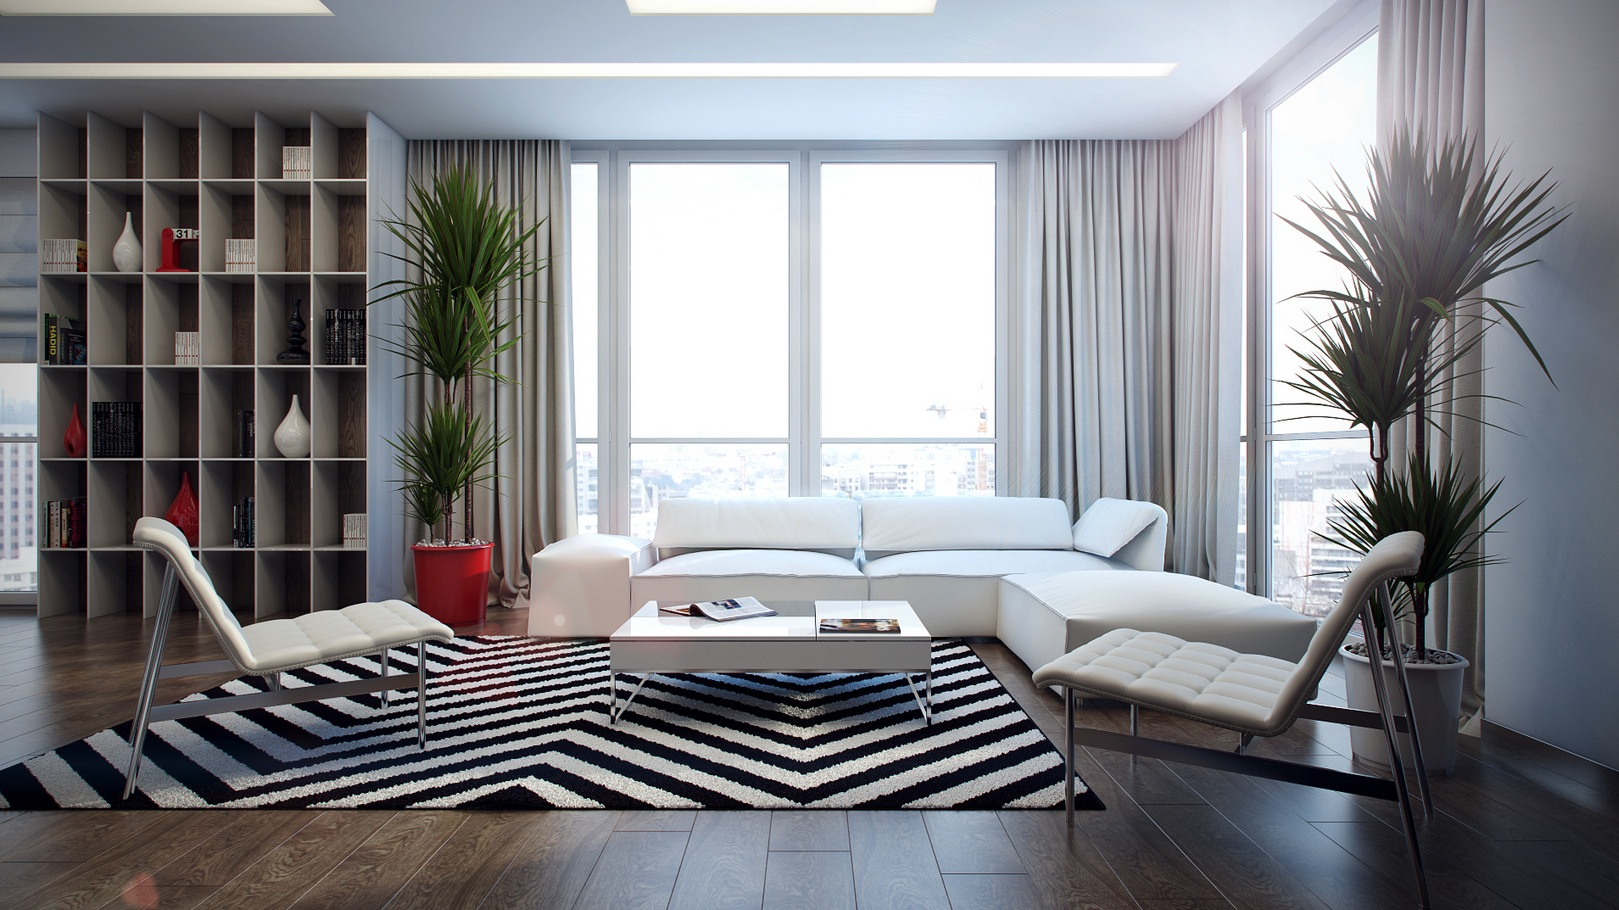 monochrome living room interior design ideas